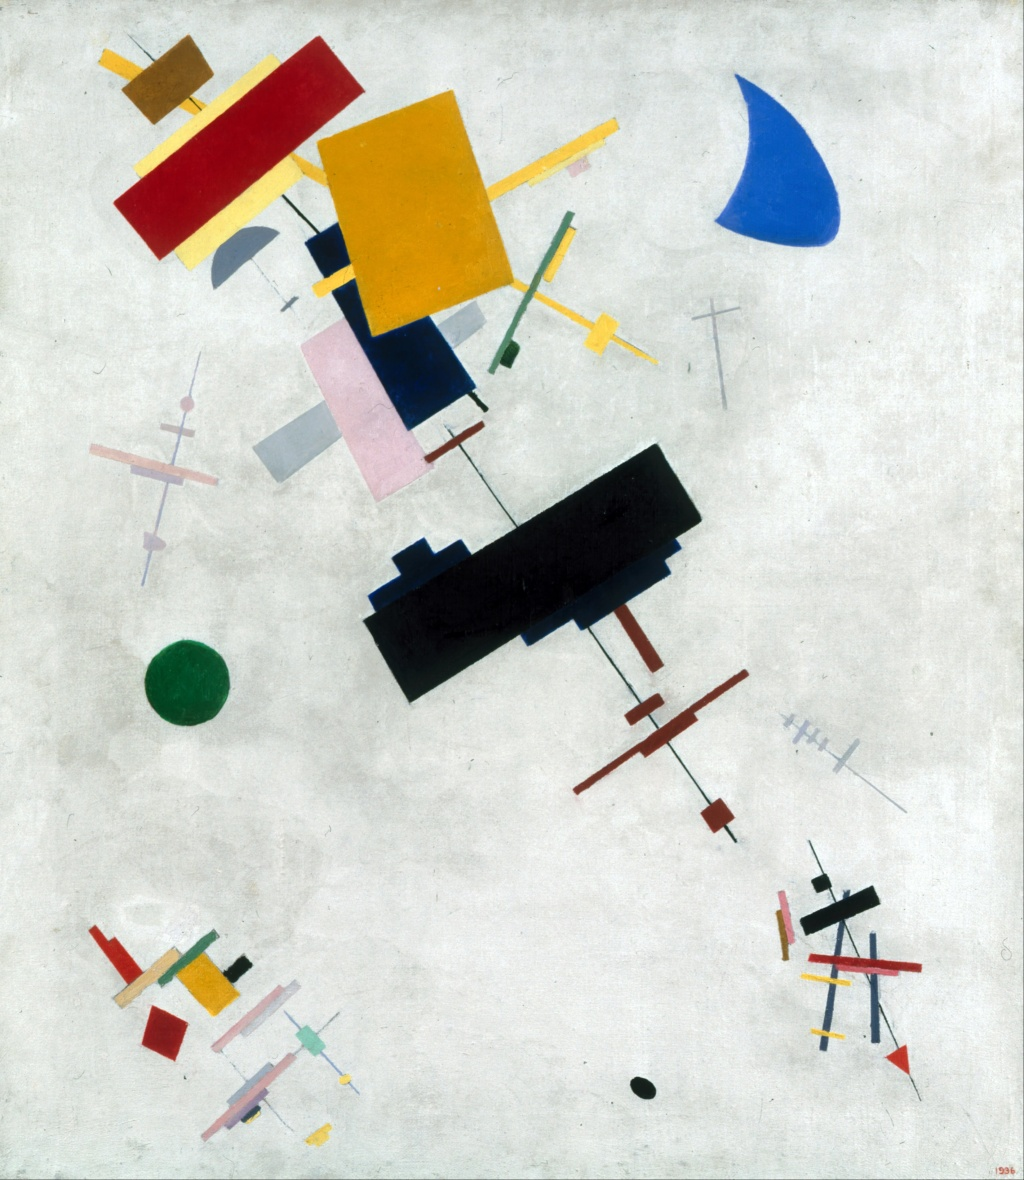 Kazimir_Malevich_-_Suprematism_-_Google_Art_Project